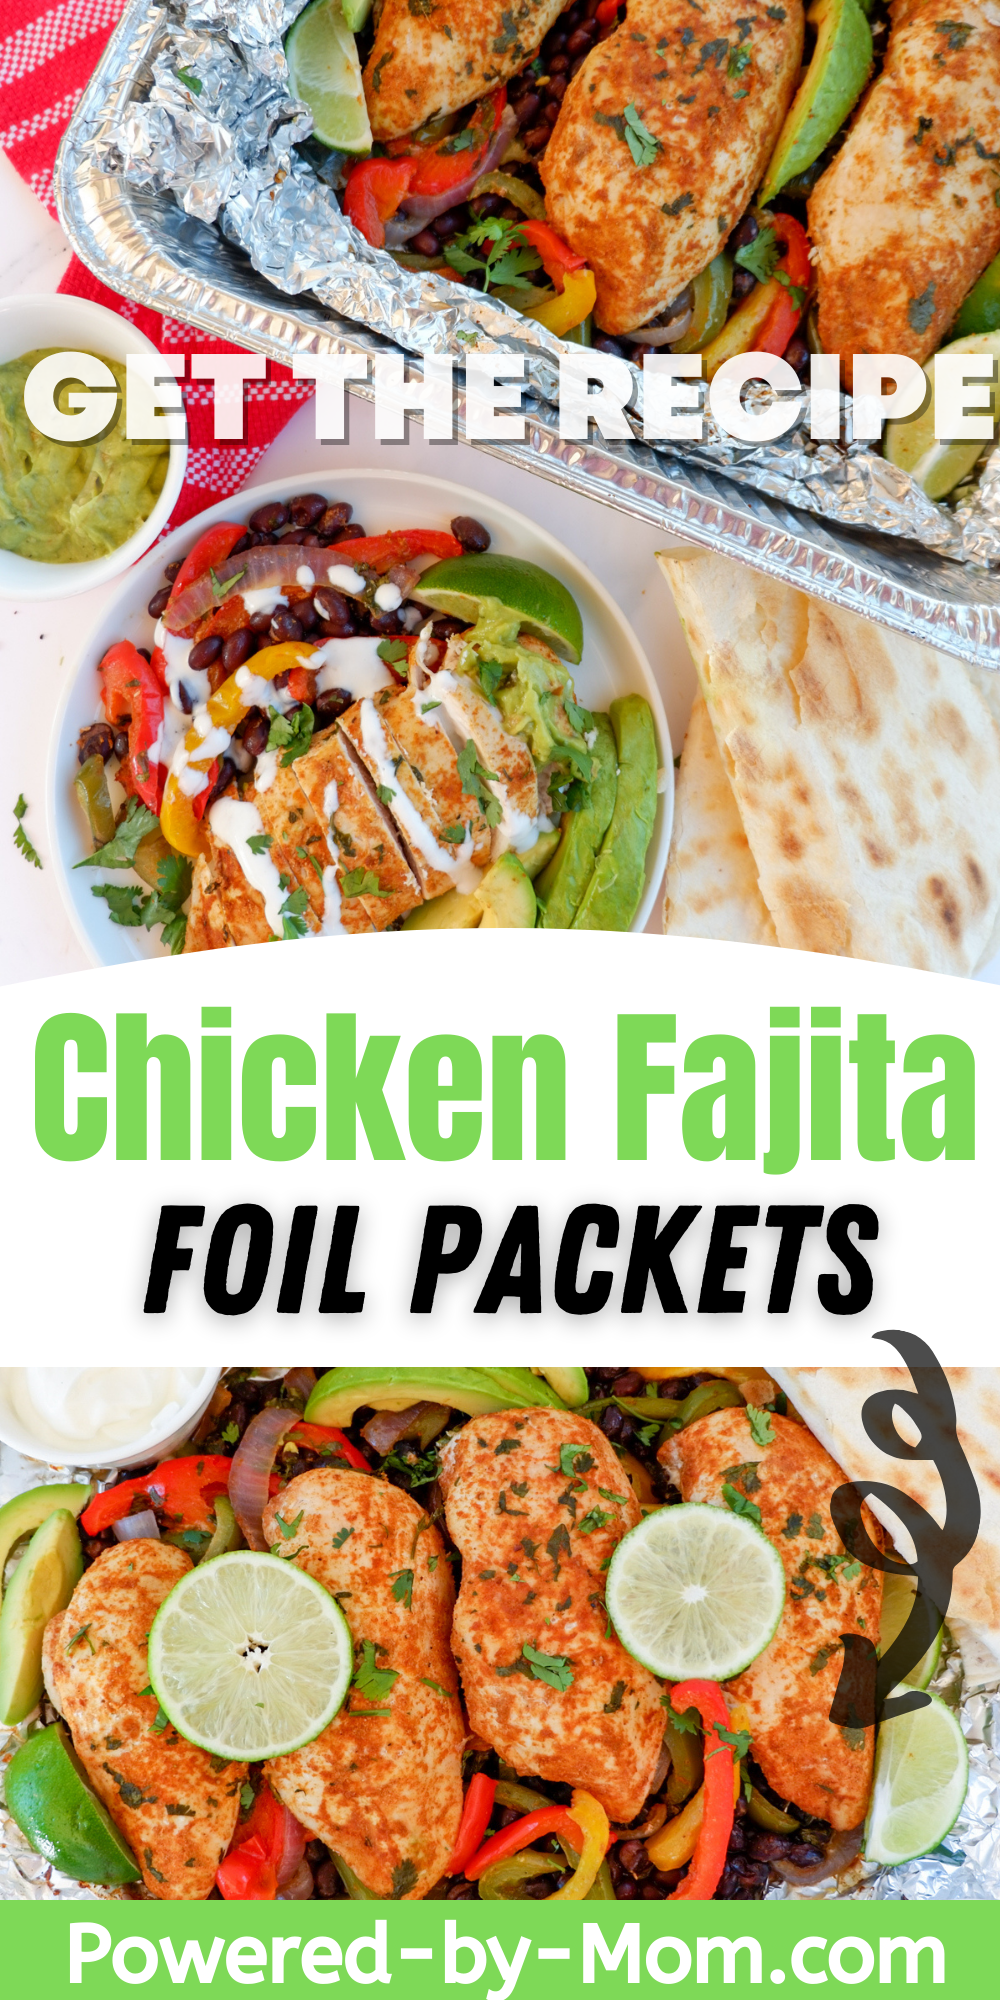 These Chicken Fajitas Foil Packets can have everything that you love about traditional chicken fajitas but with less mess and fuss and all the yummy flavour!